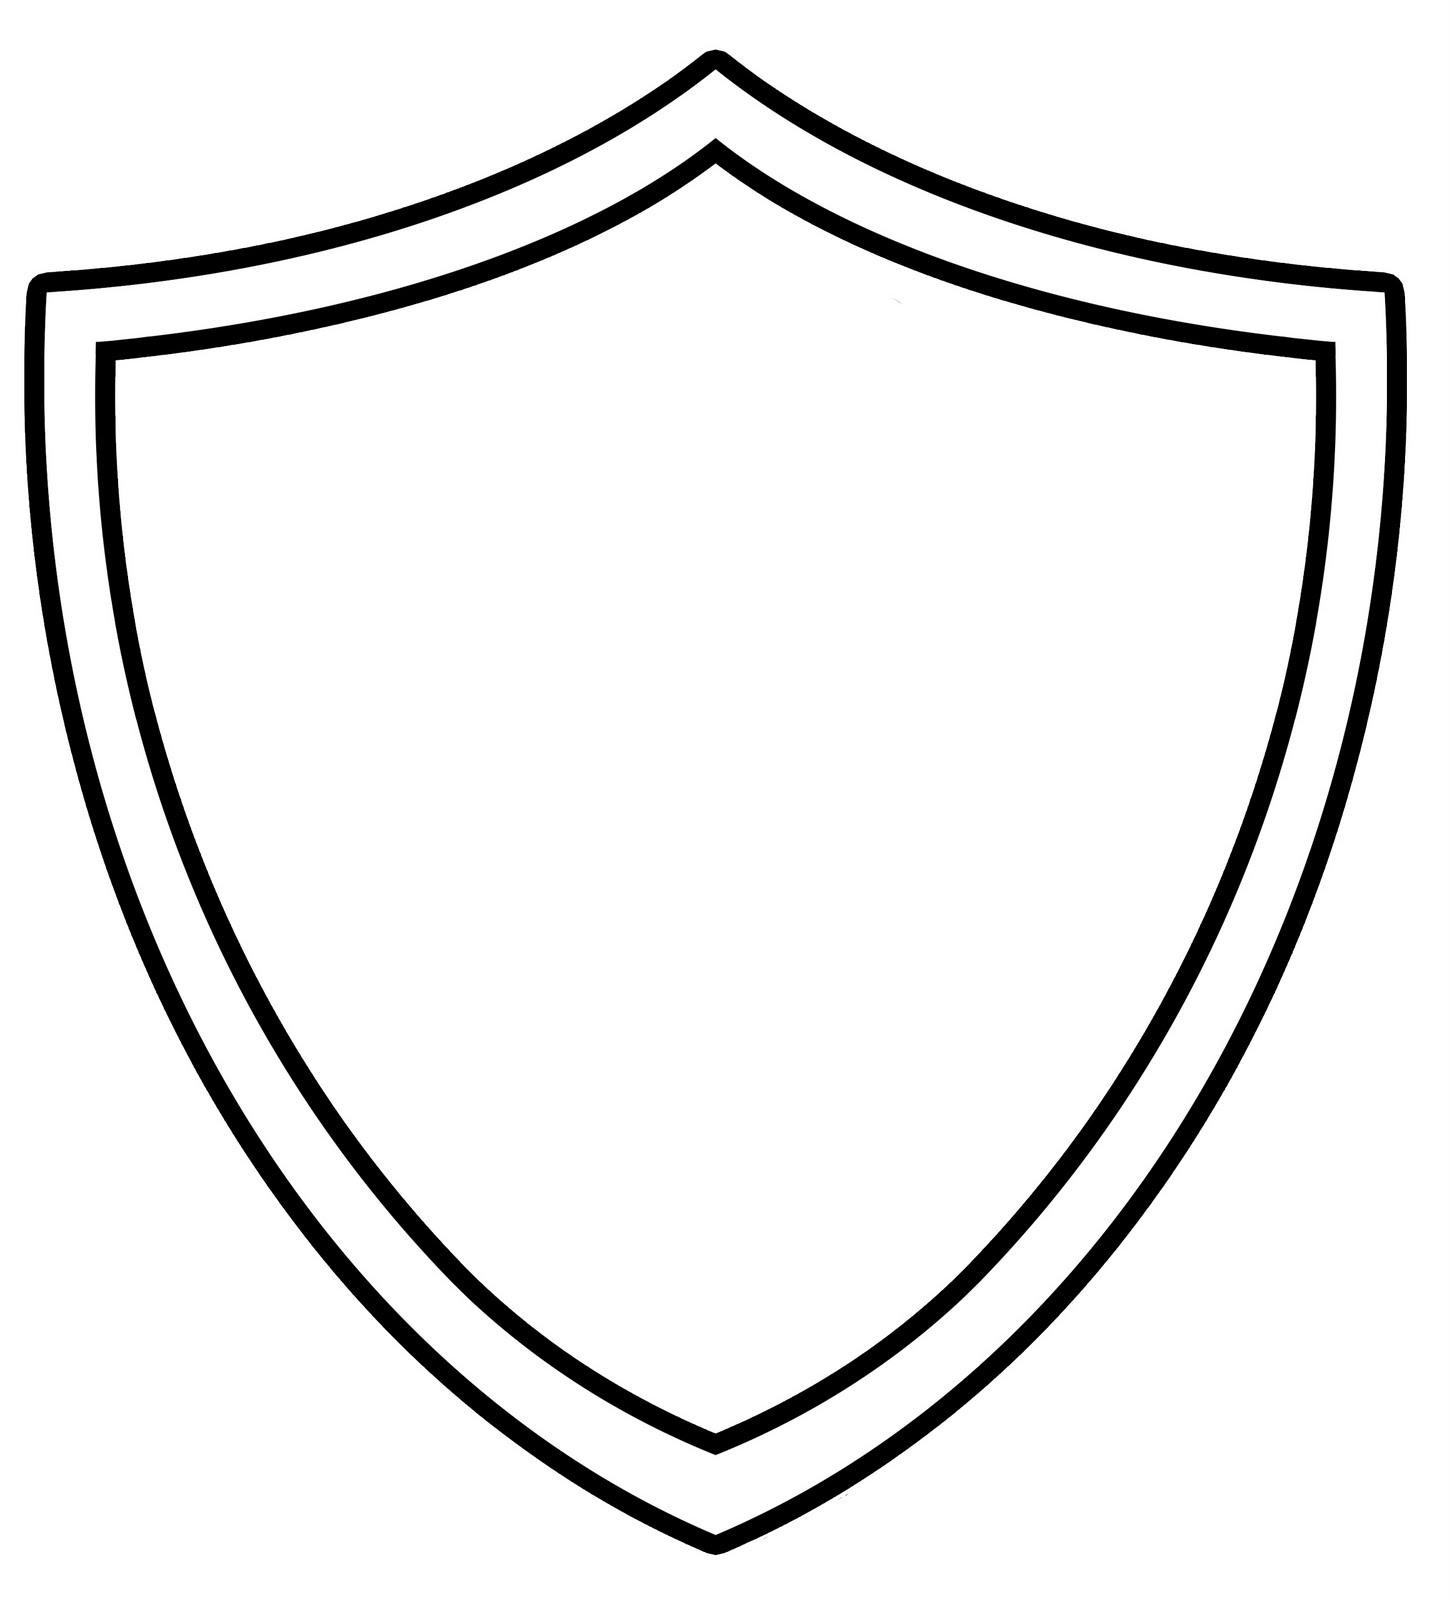 10 Shield Design Template Images